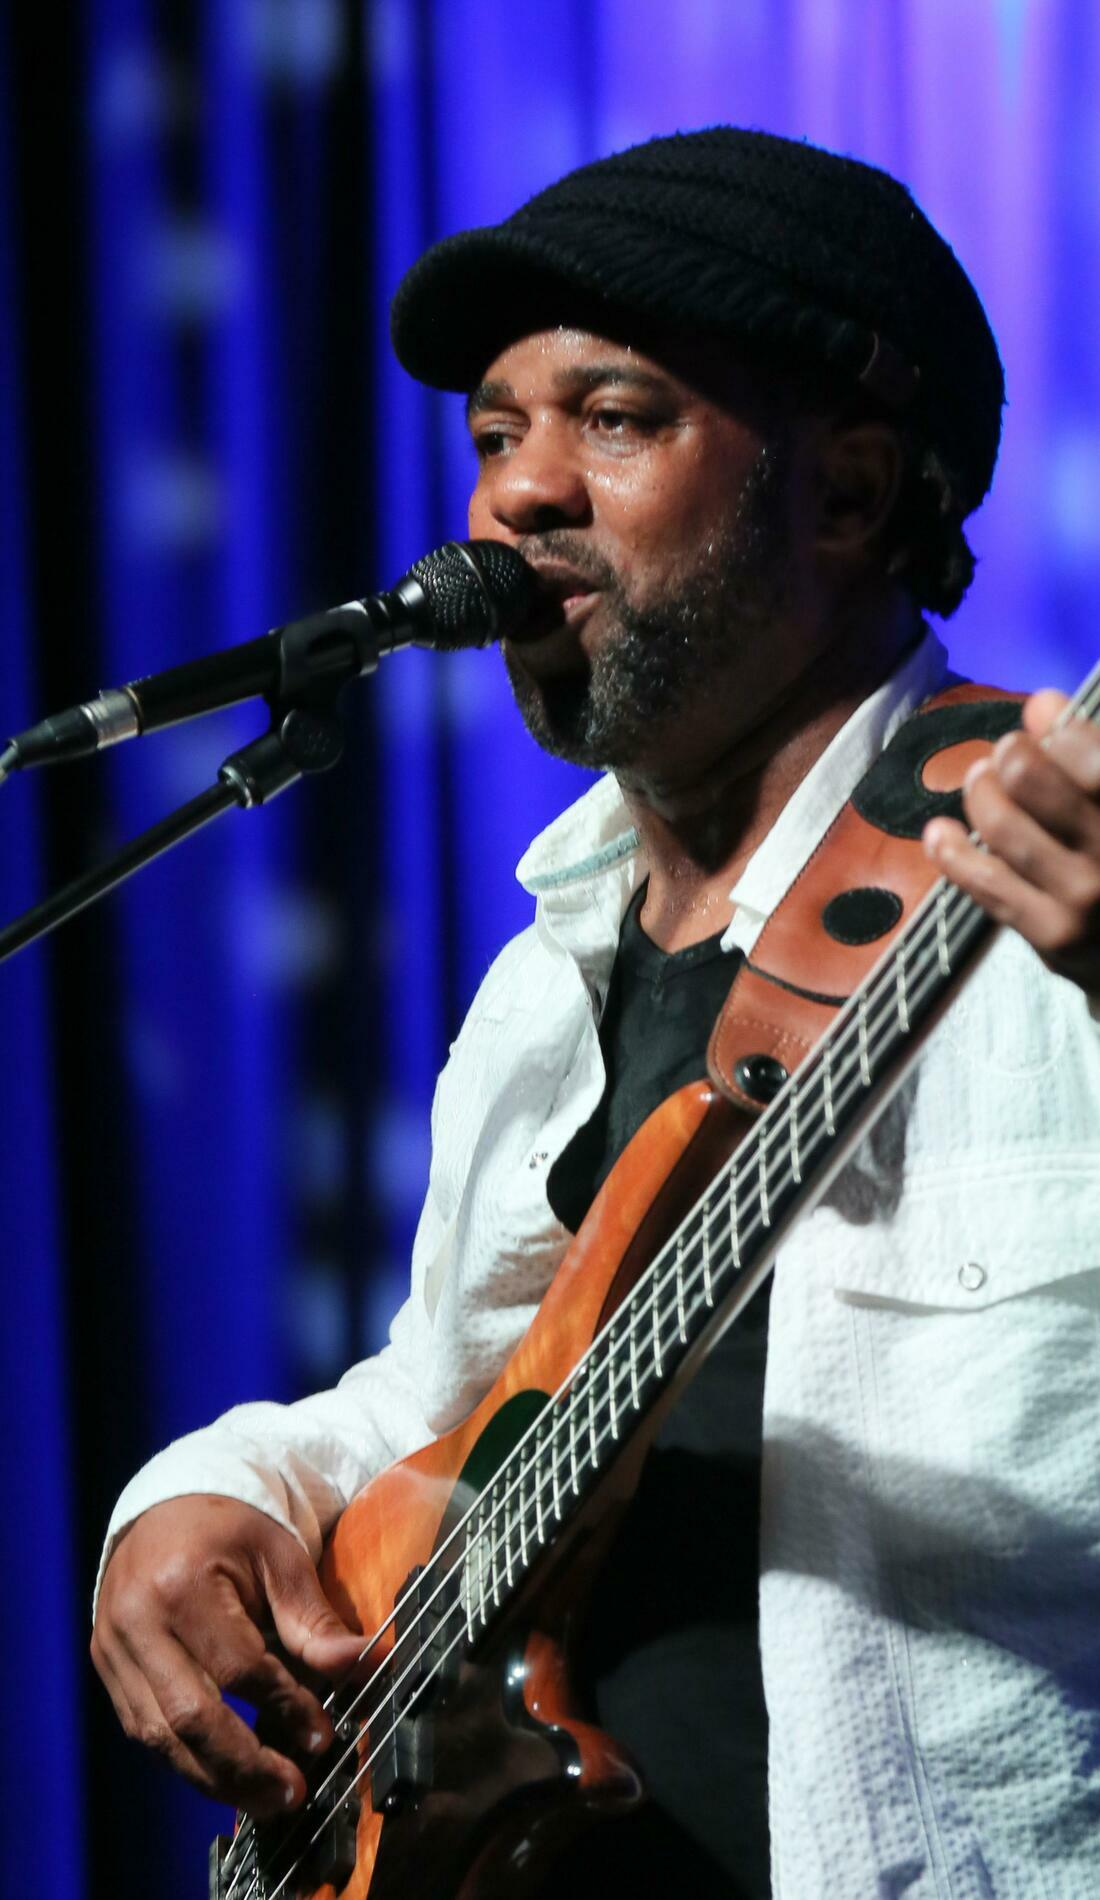 A Victor Wooten live event